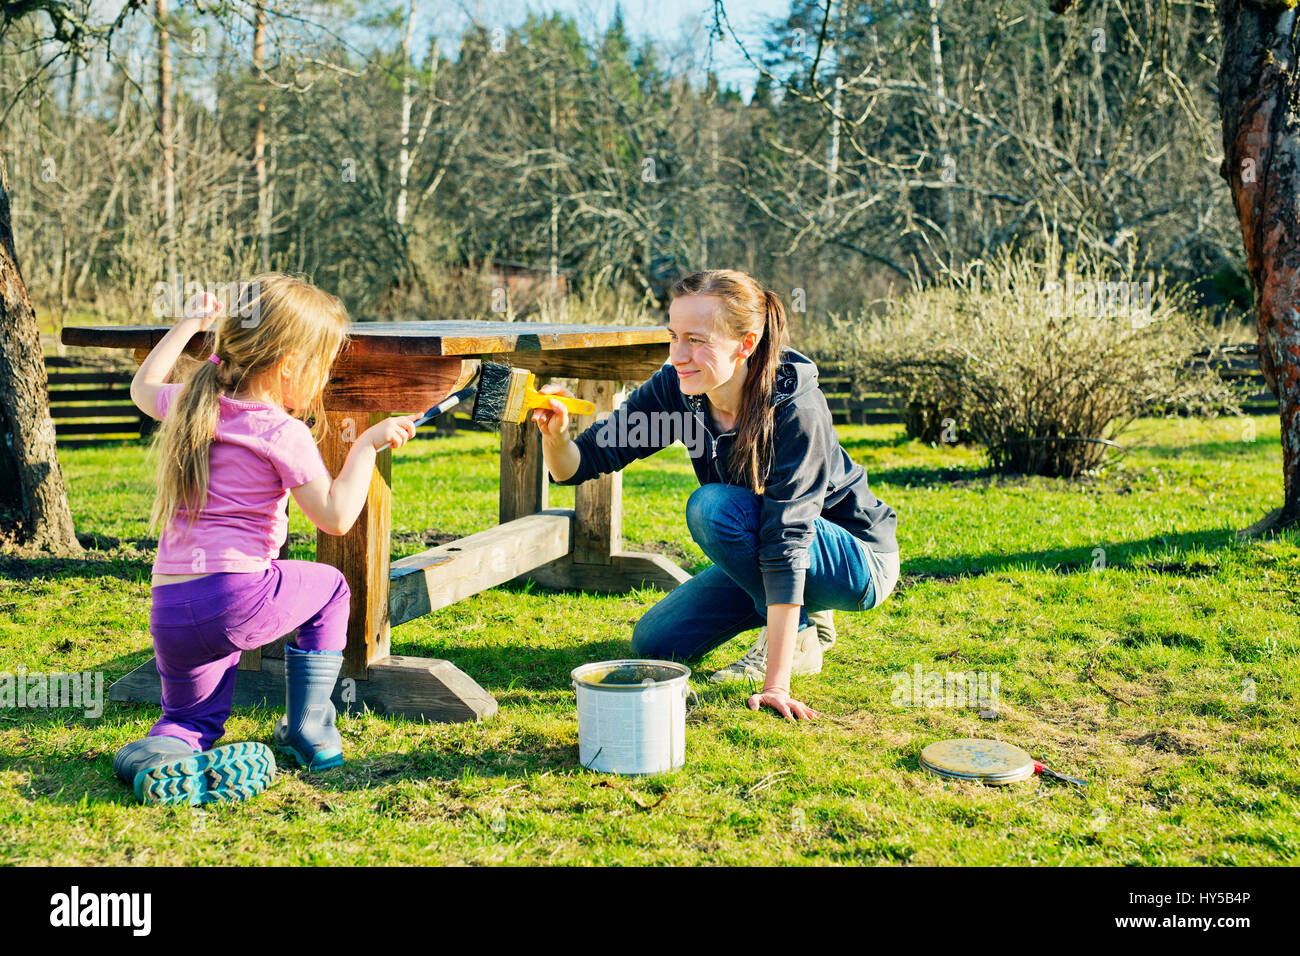 Finland, Paijat-Hame, Heinola, Mother with daughter (4-5) painting wooden table in garden - Stock Image